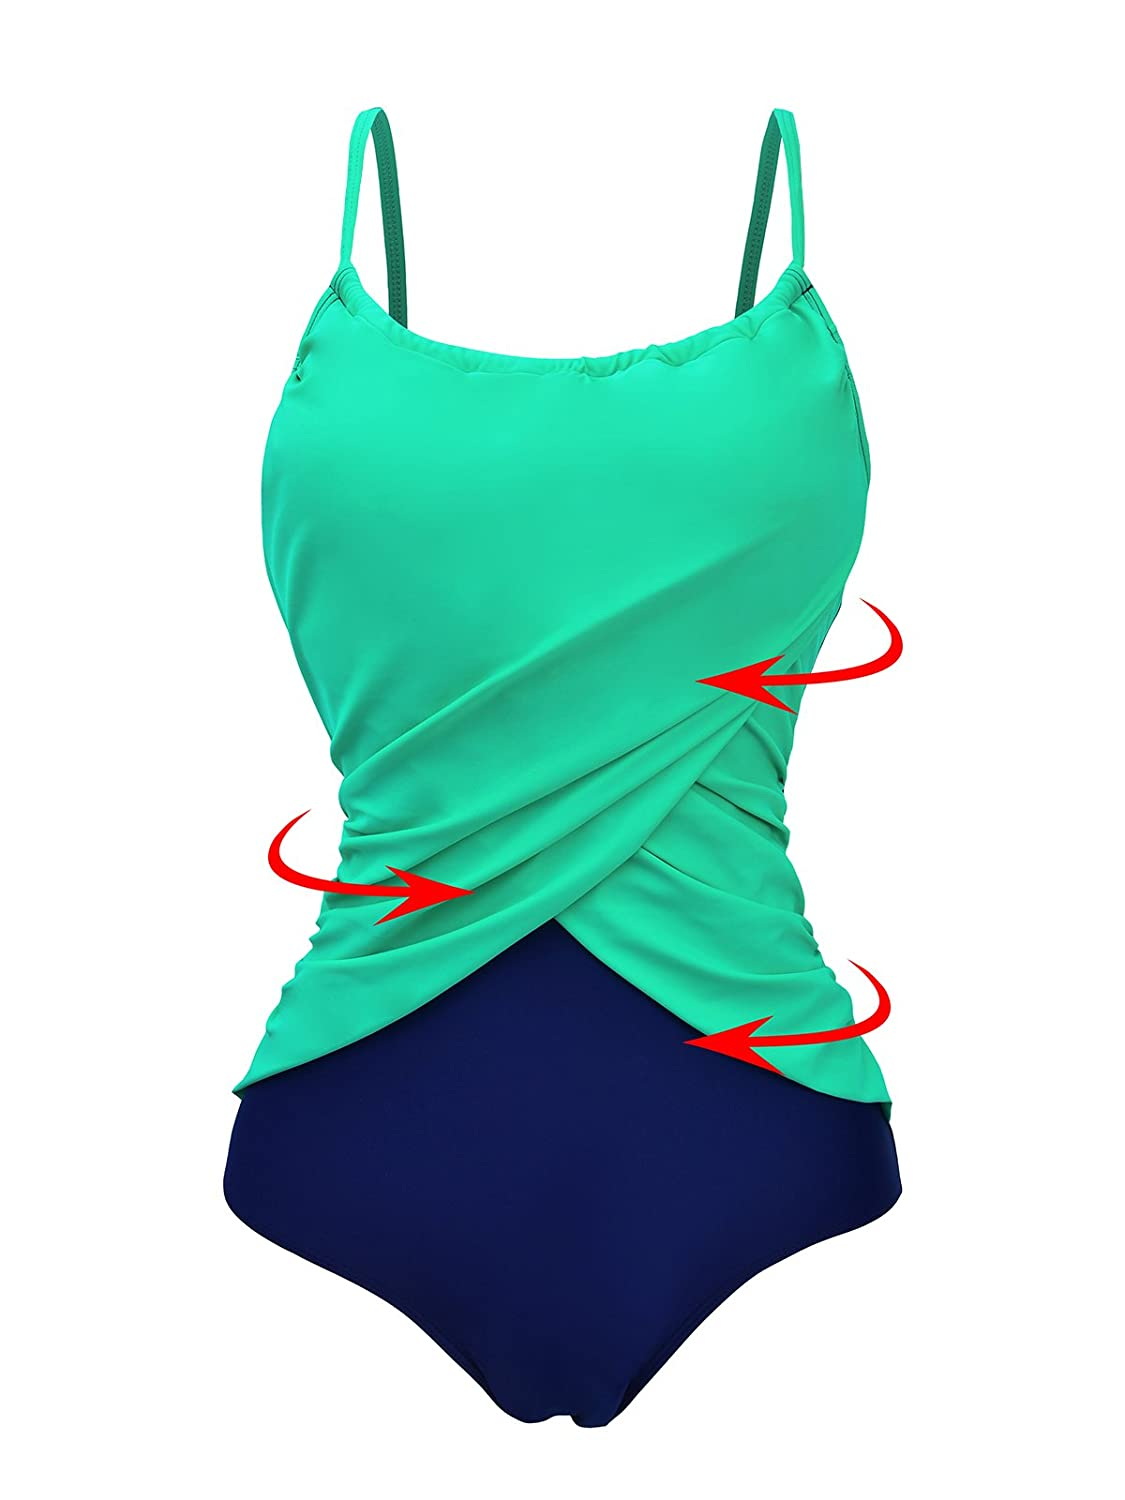 89c51d387864a DESIGN: Vintage one piece swimsuits, pin up swimsuits, tummy control  swimwear, plus size ...